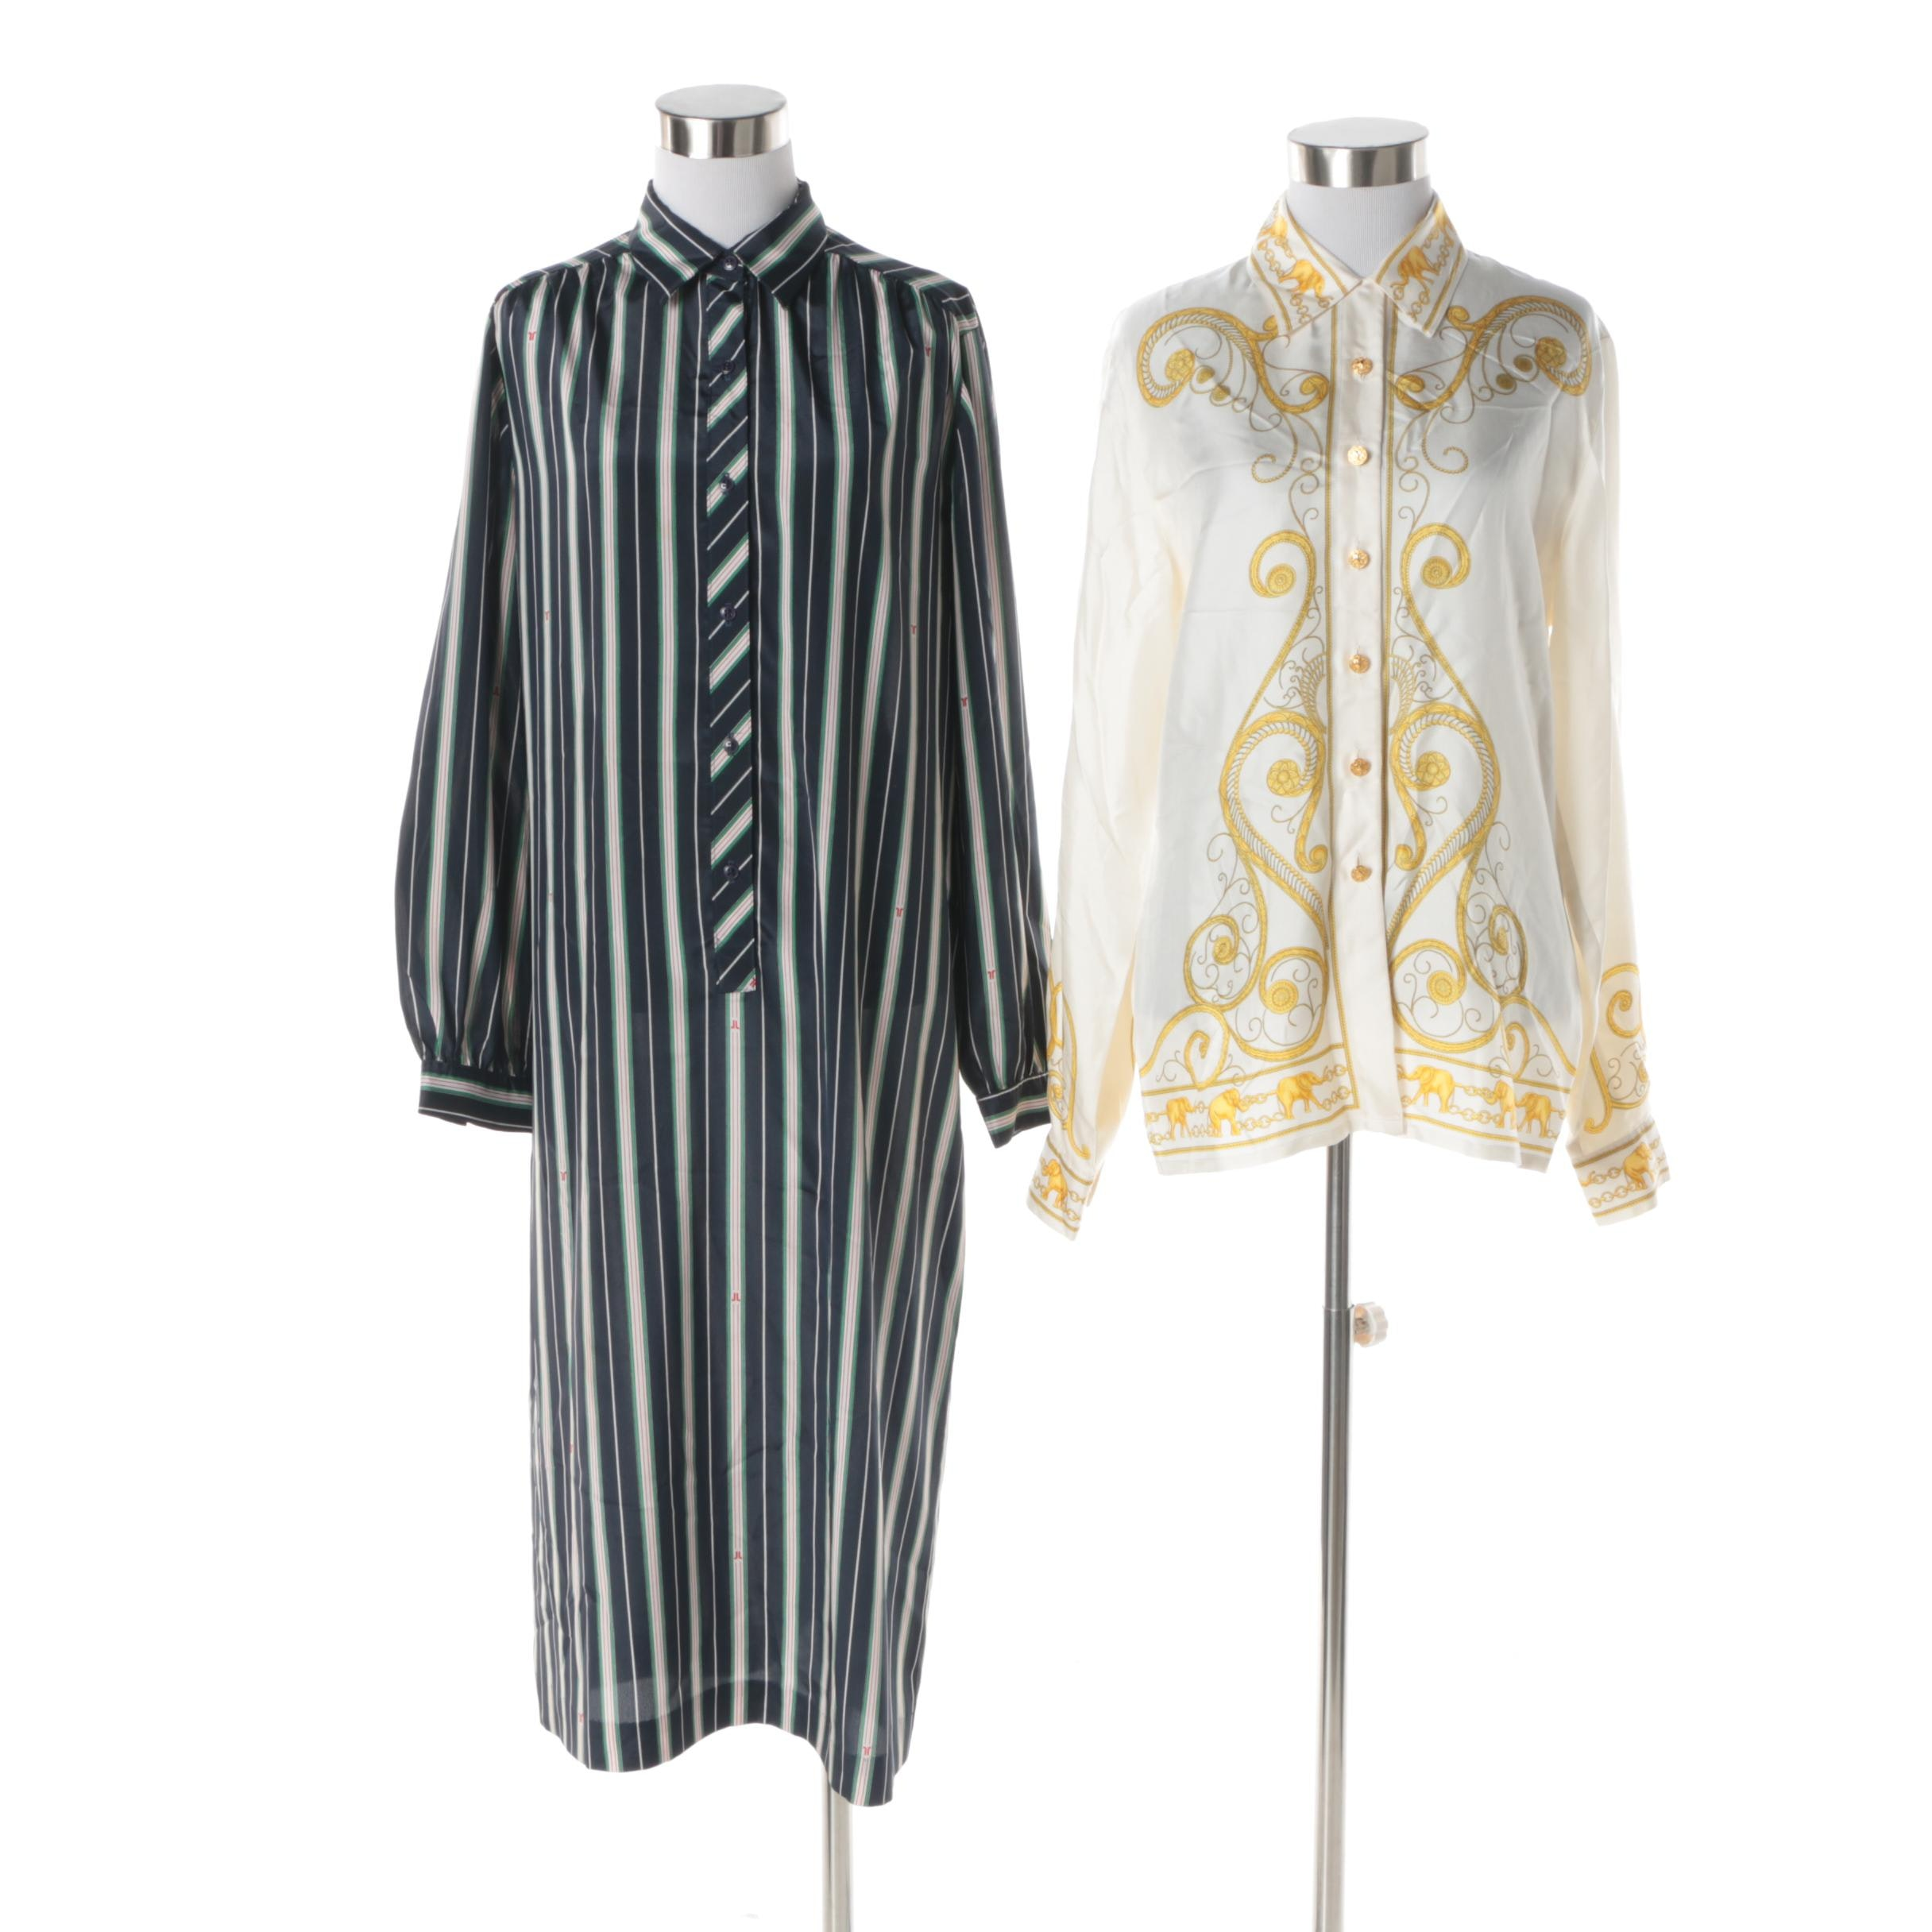 Women's Escada Margaretha Ley Silk Blouse and Lanvin Silk Striped Shirt Dress